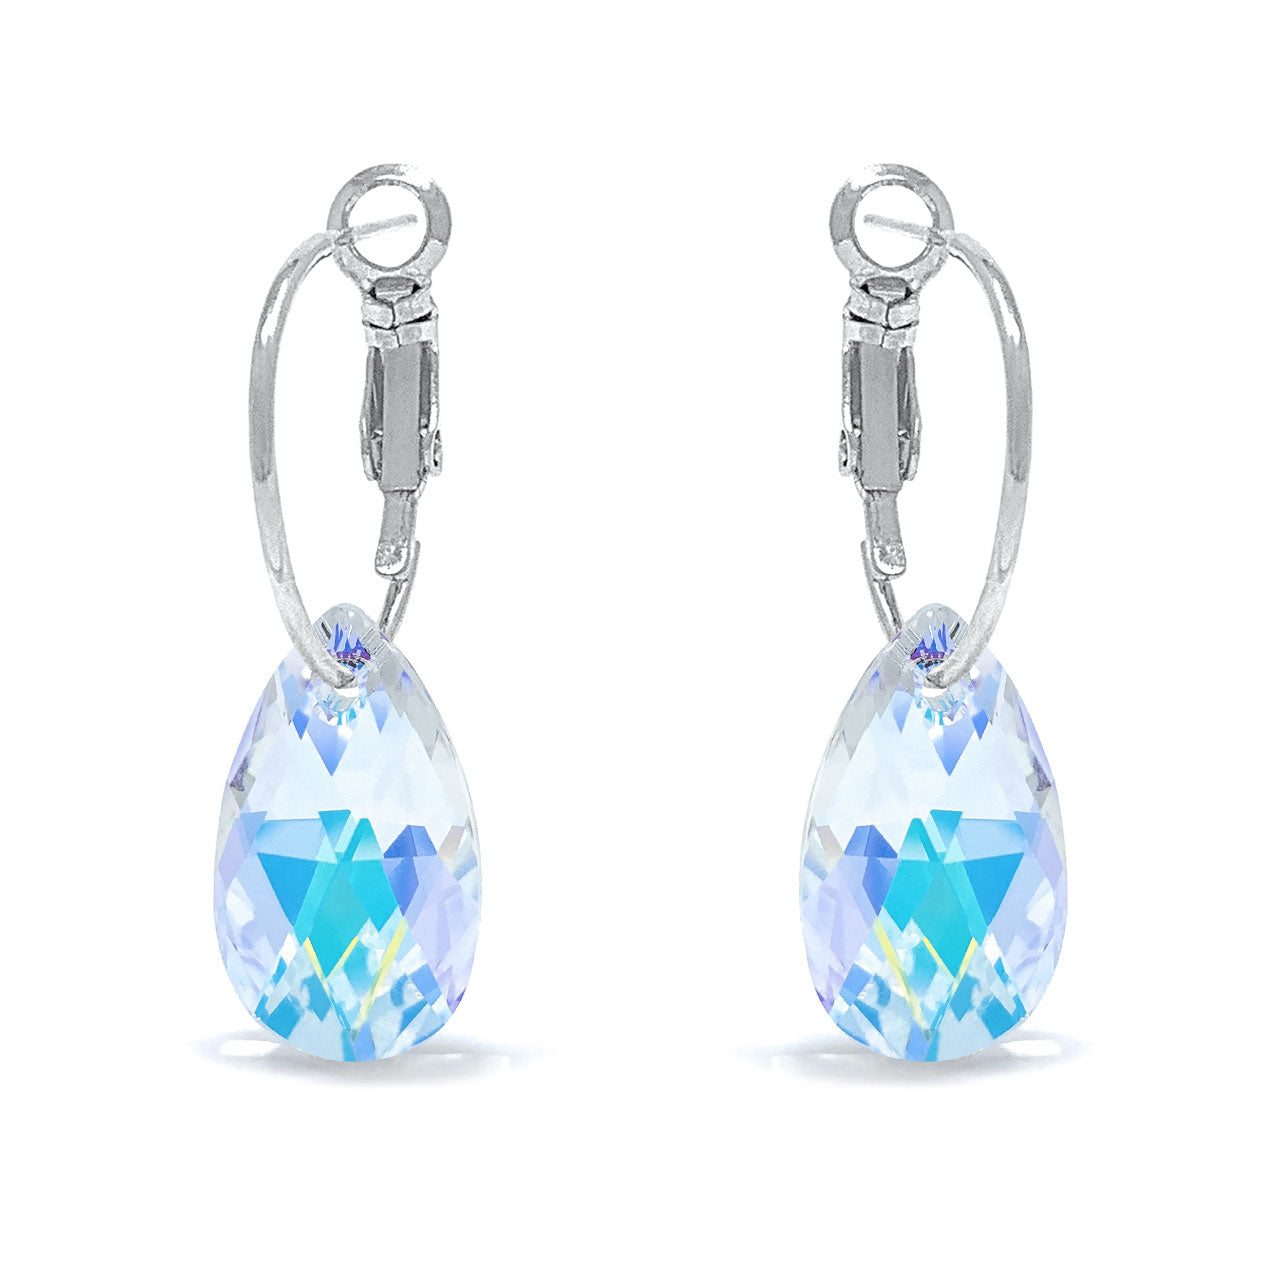 Aurora Small Drop Earrings with Clear Multicolor Aurore Boreale Pear Crystals from Swarovski Silver Toned Rhodium Plated - Ed Heart